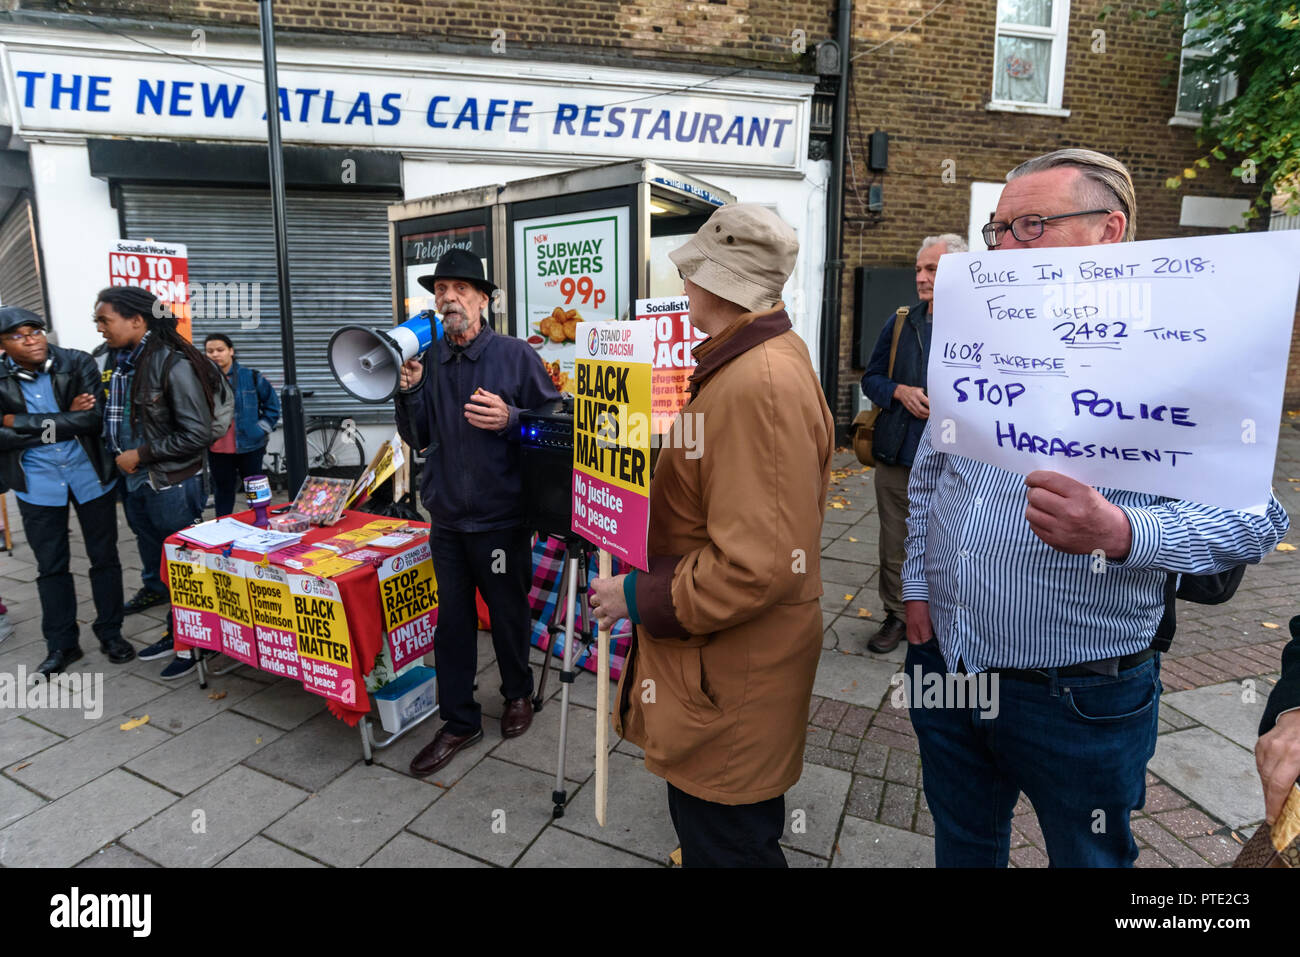 London, UK. October 9th 2018. A man holds up a poster showing a huge increase in police use of force in Brent at the rally outside the New Atlas Cafe Restaurant where a young black man was attacked by police who used obviously unnecessary force when arresting him on suspicion of having been involved in a knife attack. He was assaulted by six officers, and was viciously kicked while officers struggled to handcuff him, andwhen he was well under control and held on the ground he was sprayed in the face with CS gas. Credit: Peter Marshall/Alamy Live News - Stock Image